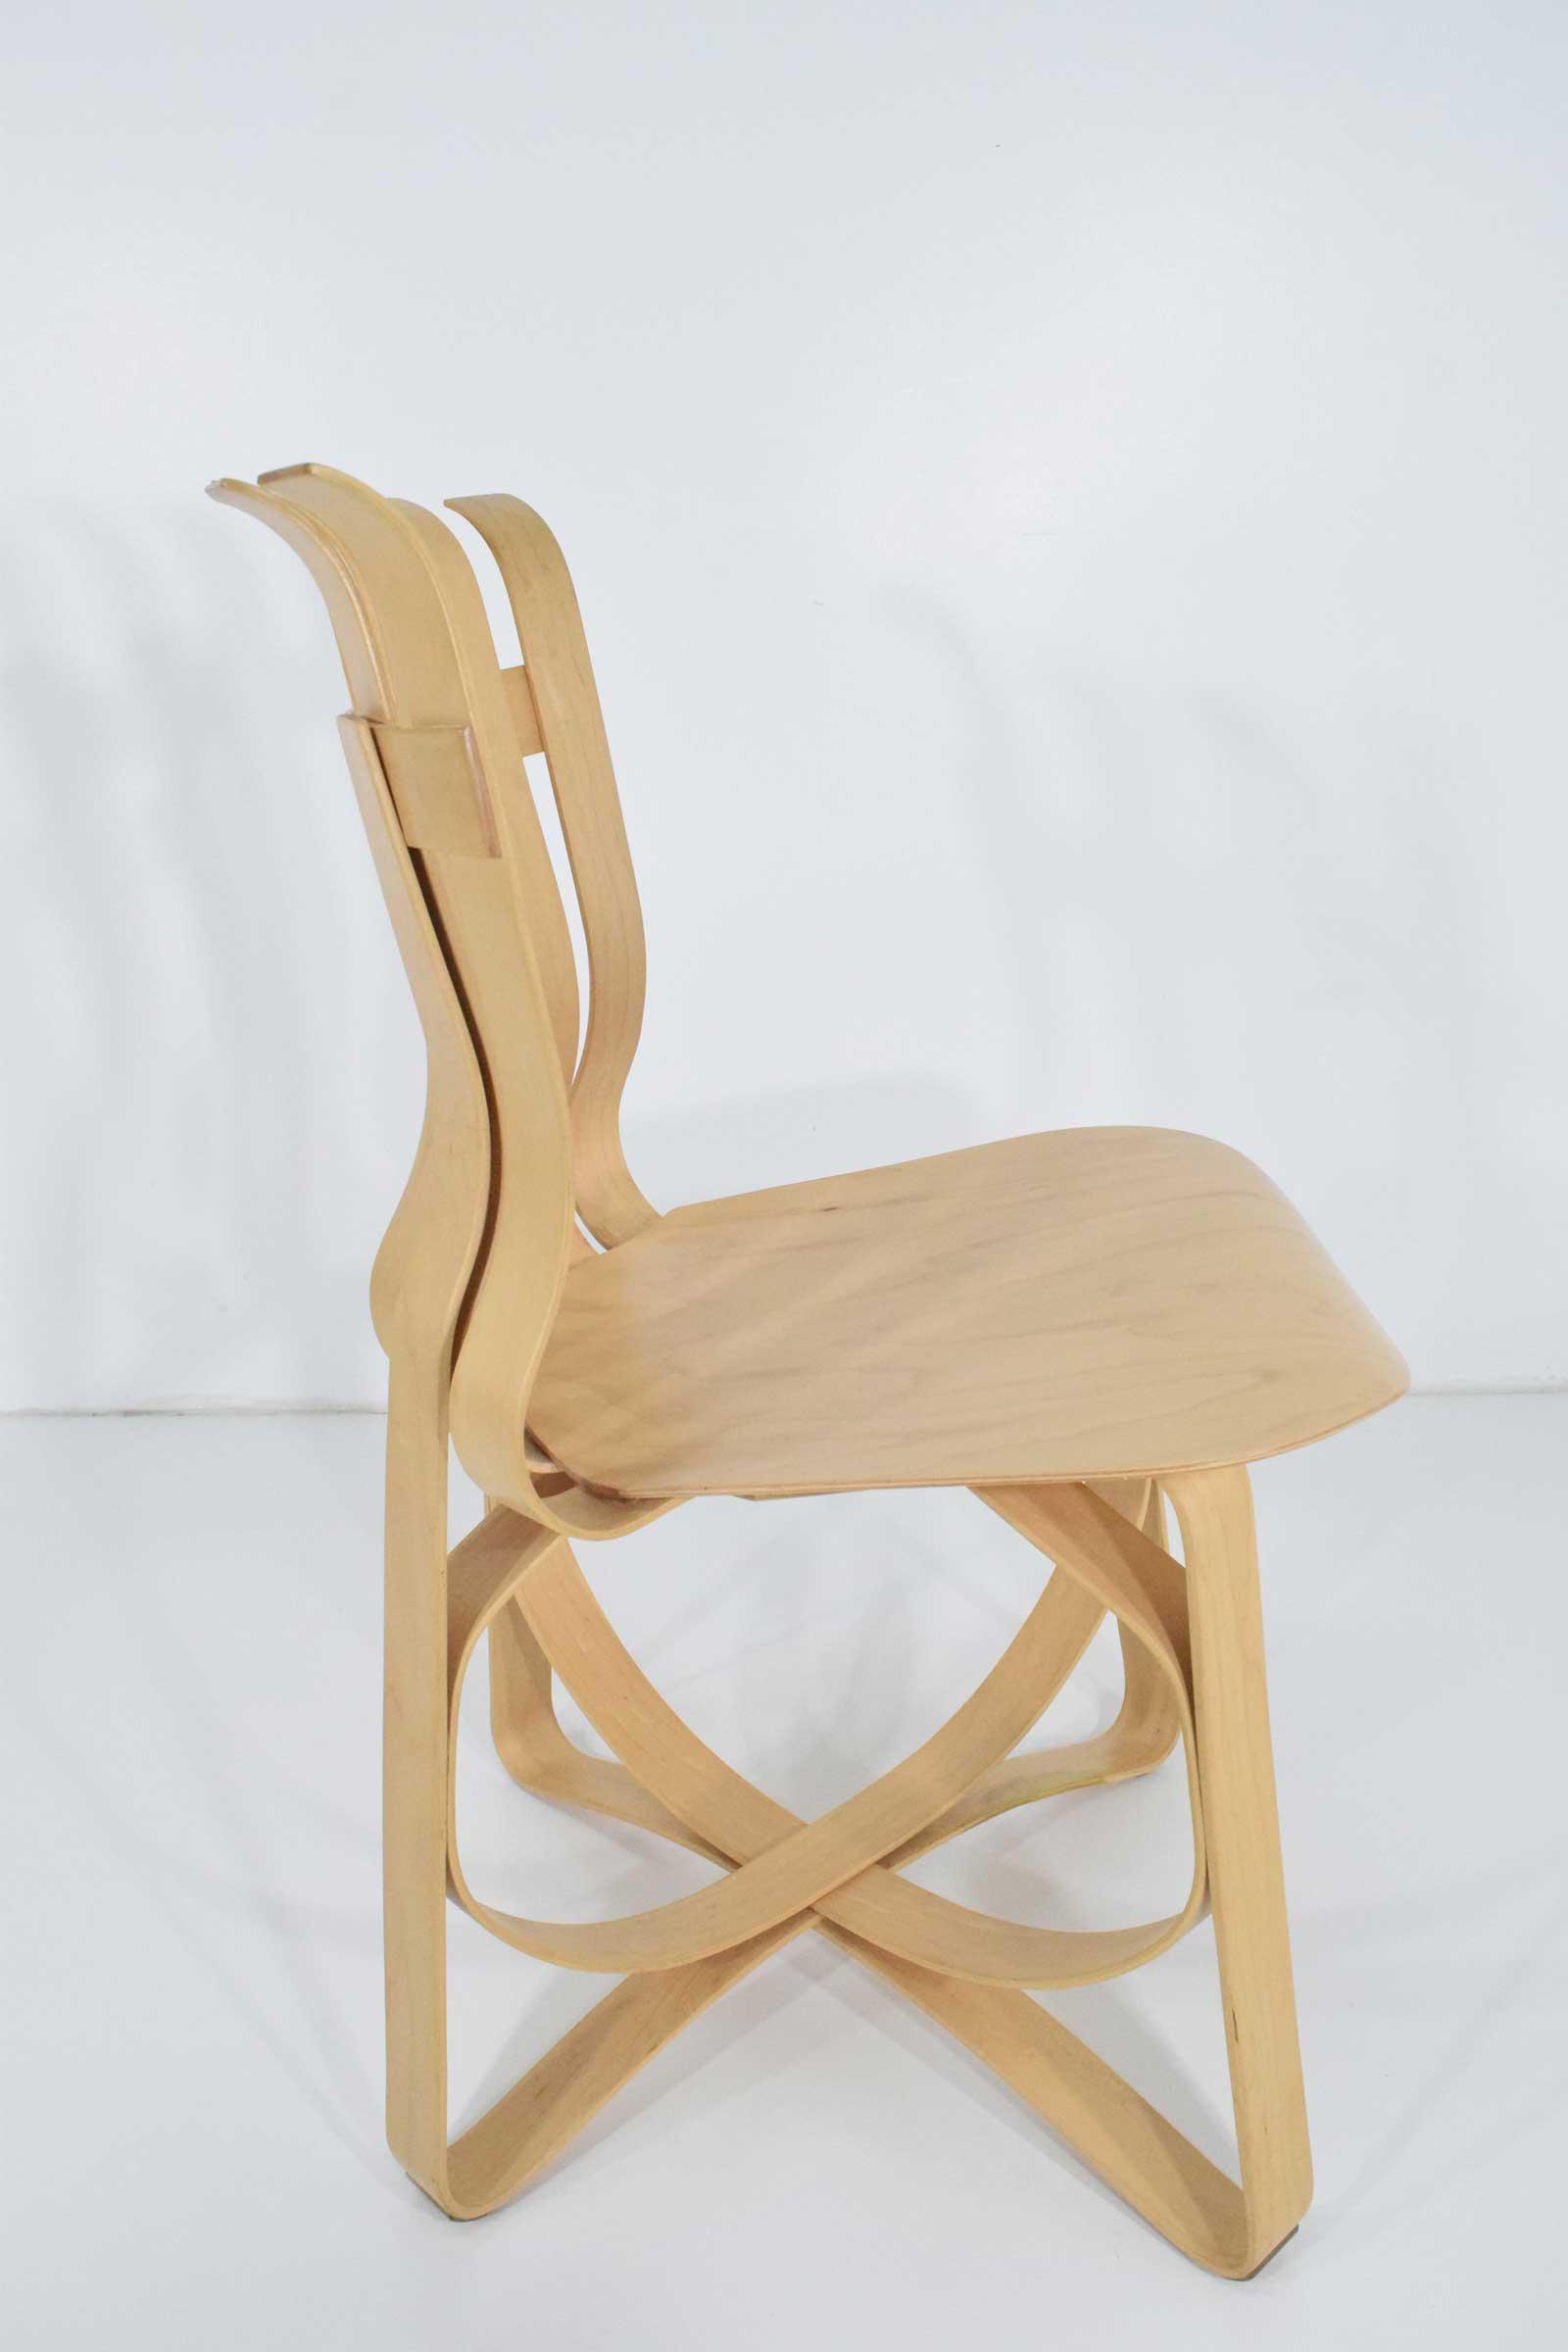 Maple Frank Gehry Hat Trick Chairs   Set Of 4 For Sale   Image 7 Of